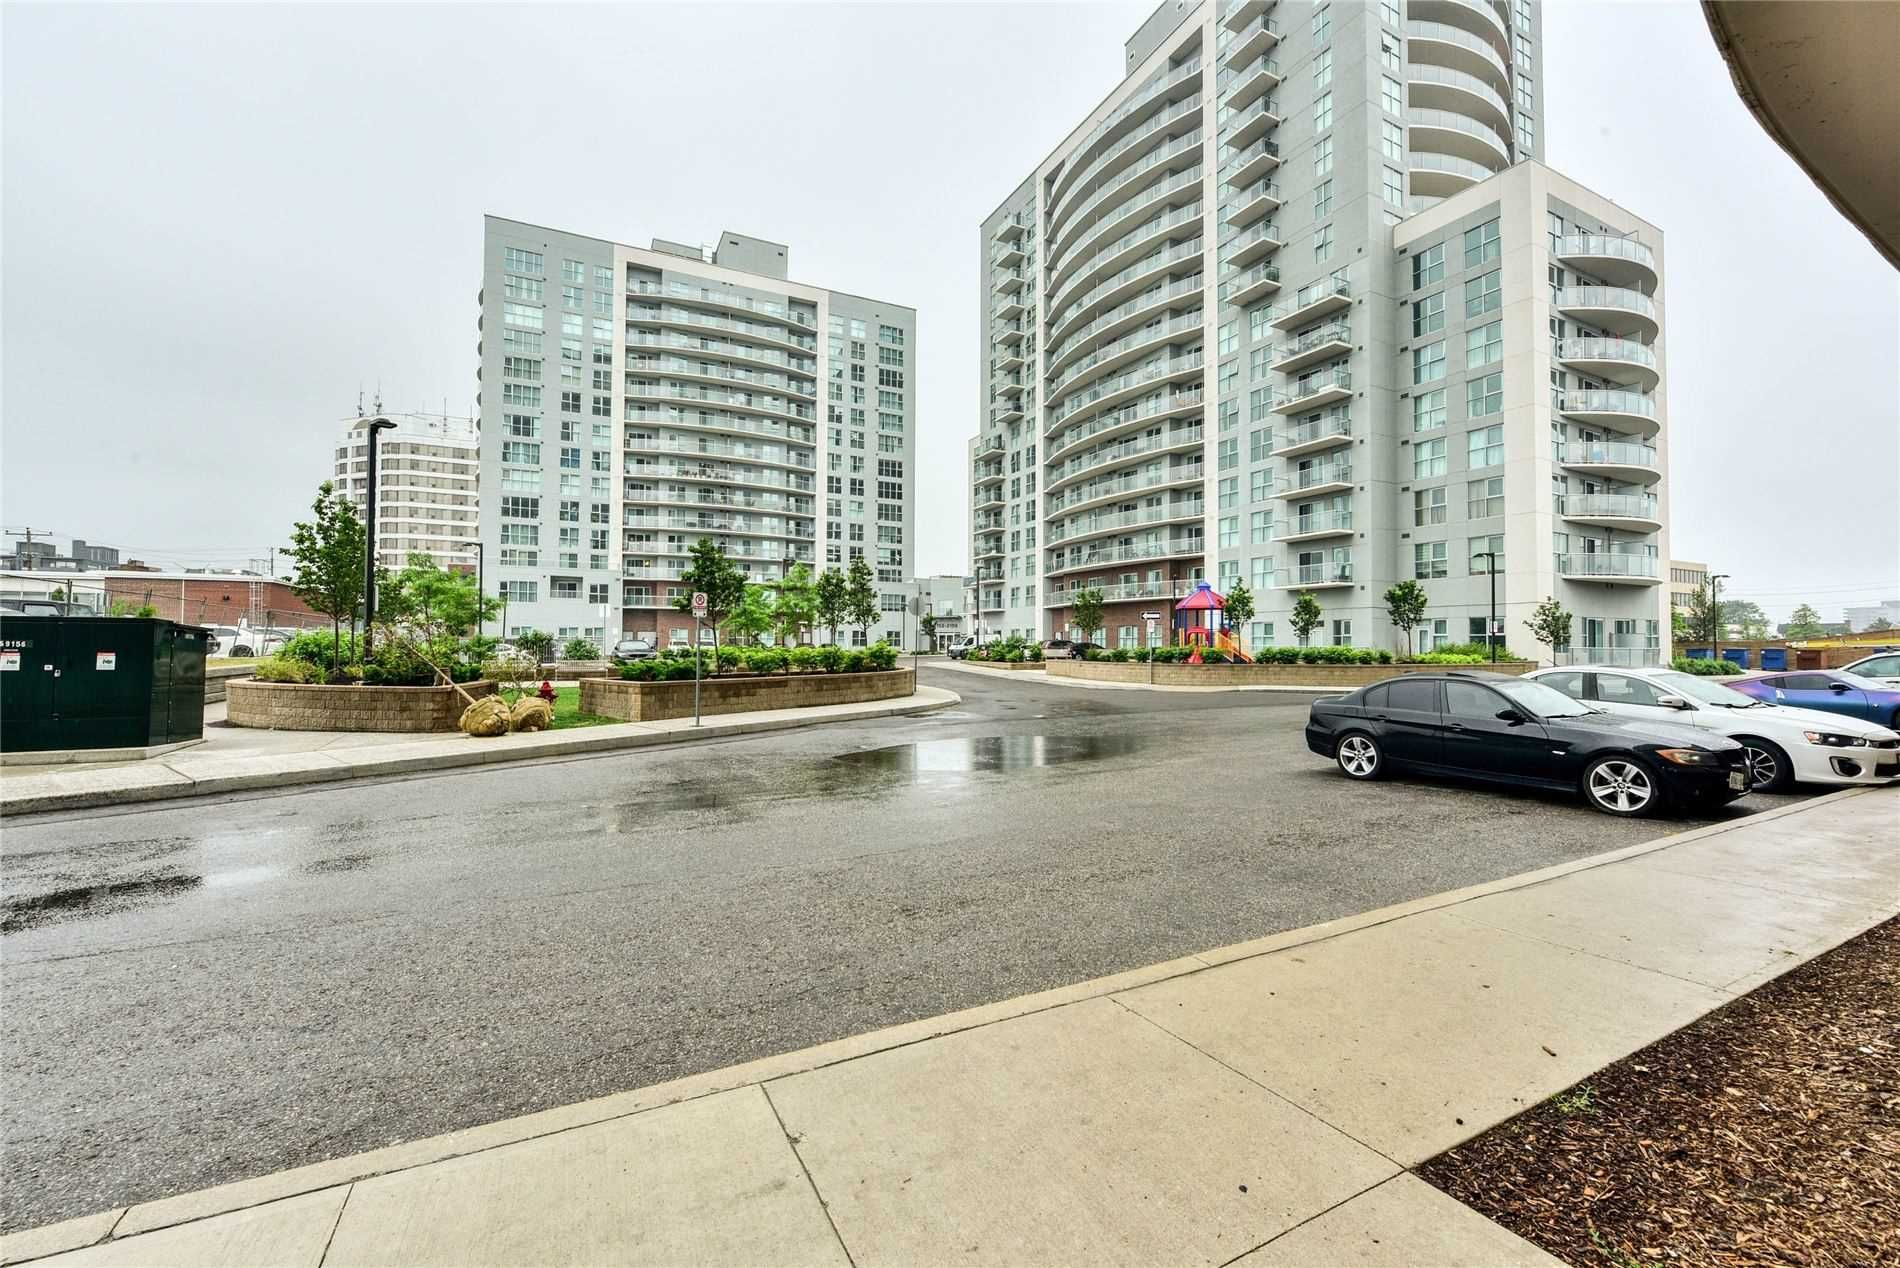 2152 Lawrence Ave E, unit 1107 for sale in Toronto - image #2